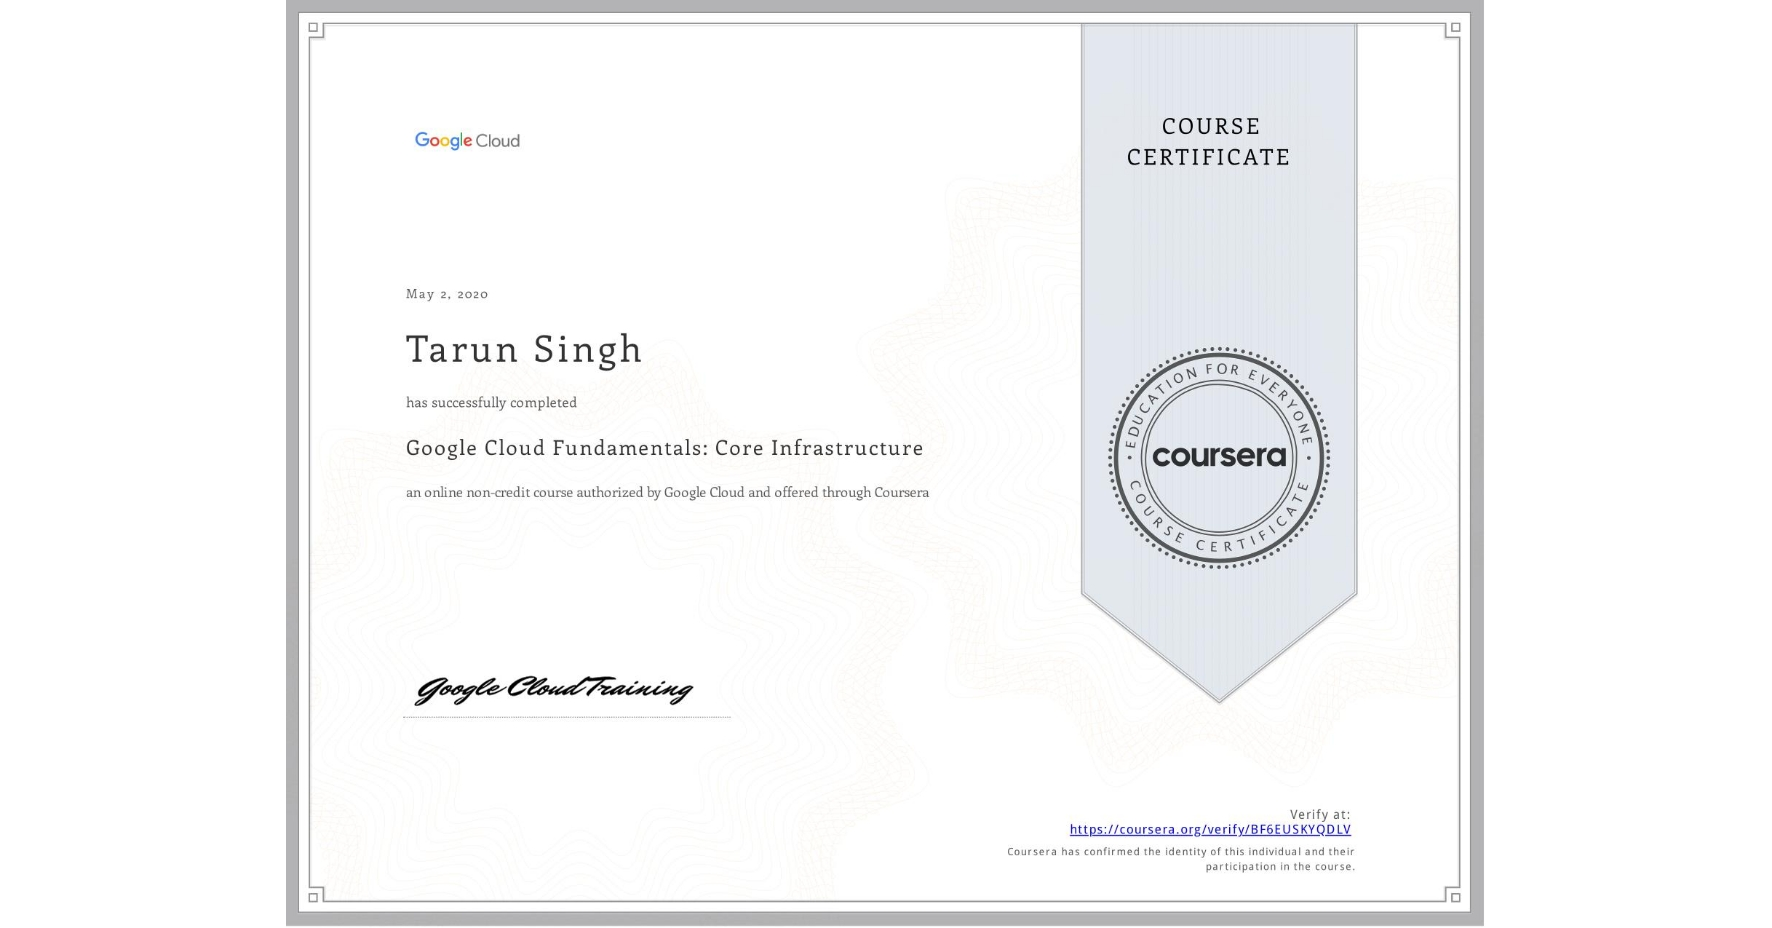 View certificate for Tarun Singh, Google Cloud Fundamentals: Core Infrastructure, an online non-credit course authorized by Google Cloud and offered through Coursera